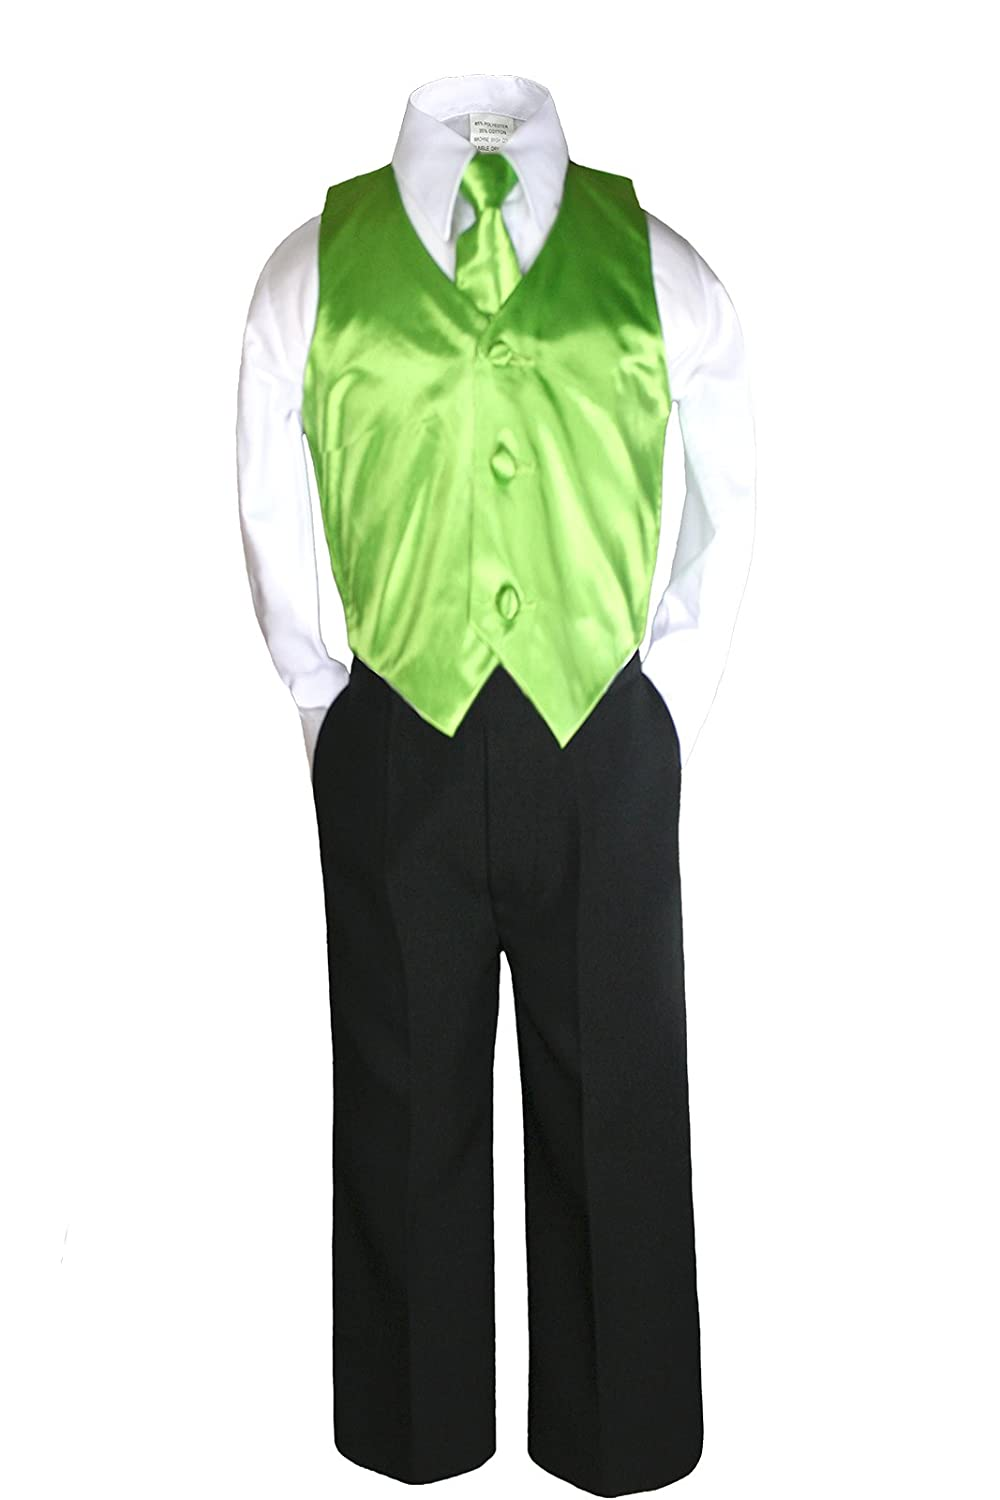 Unotux 4 Piece Formal Boy Green Vest Set Suit 0 month to 7 years (7)